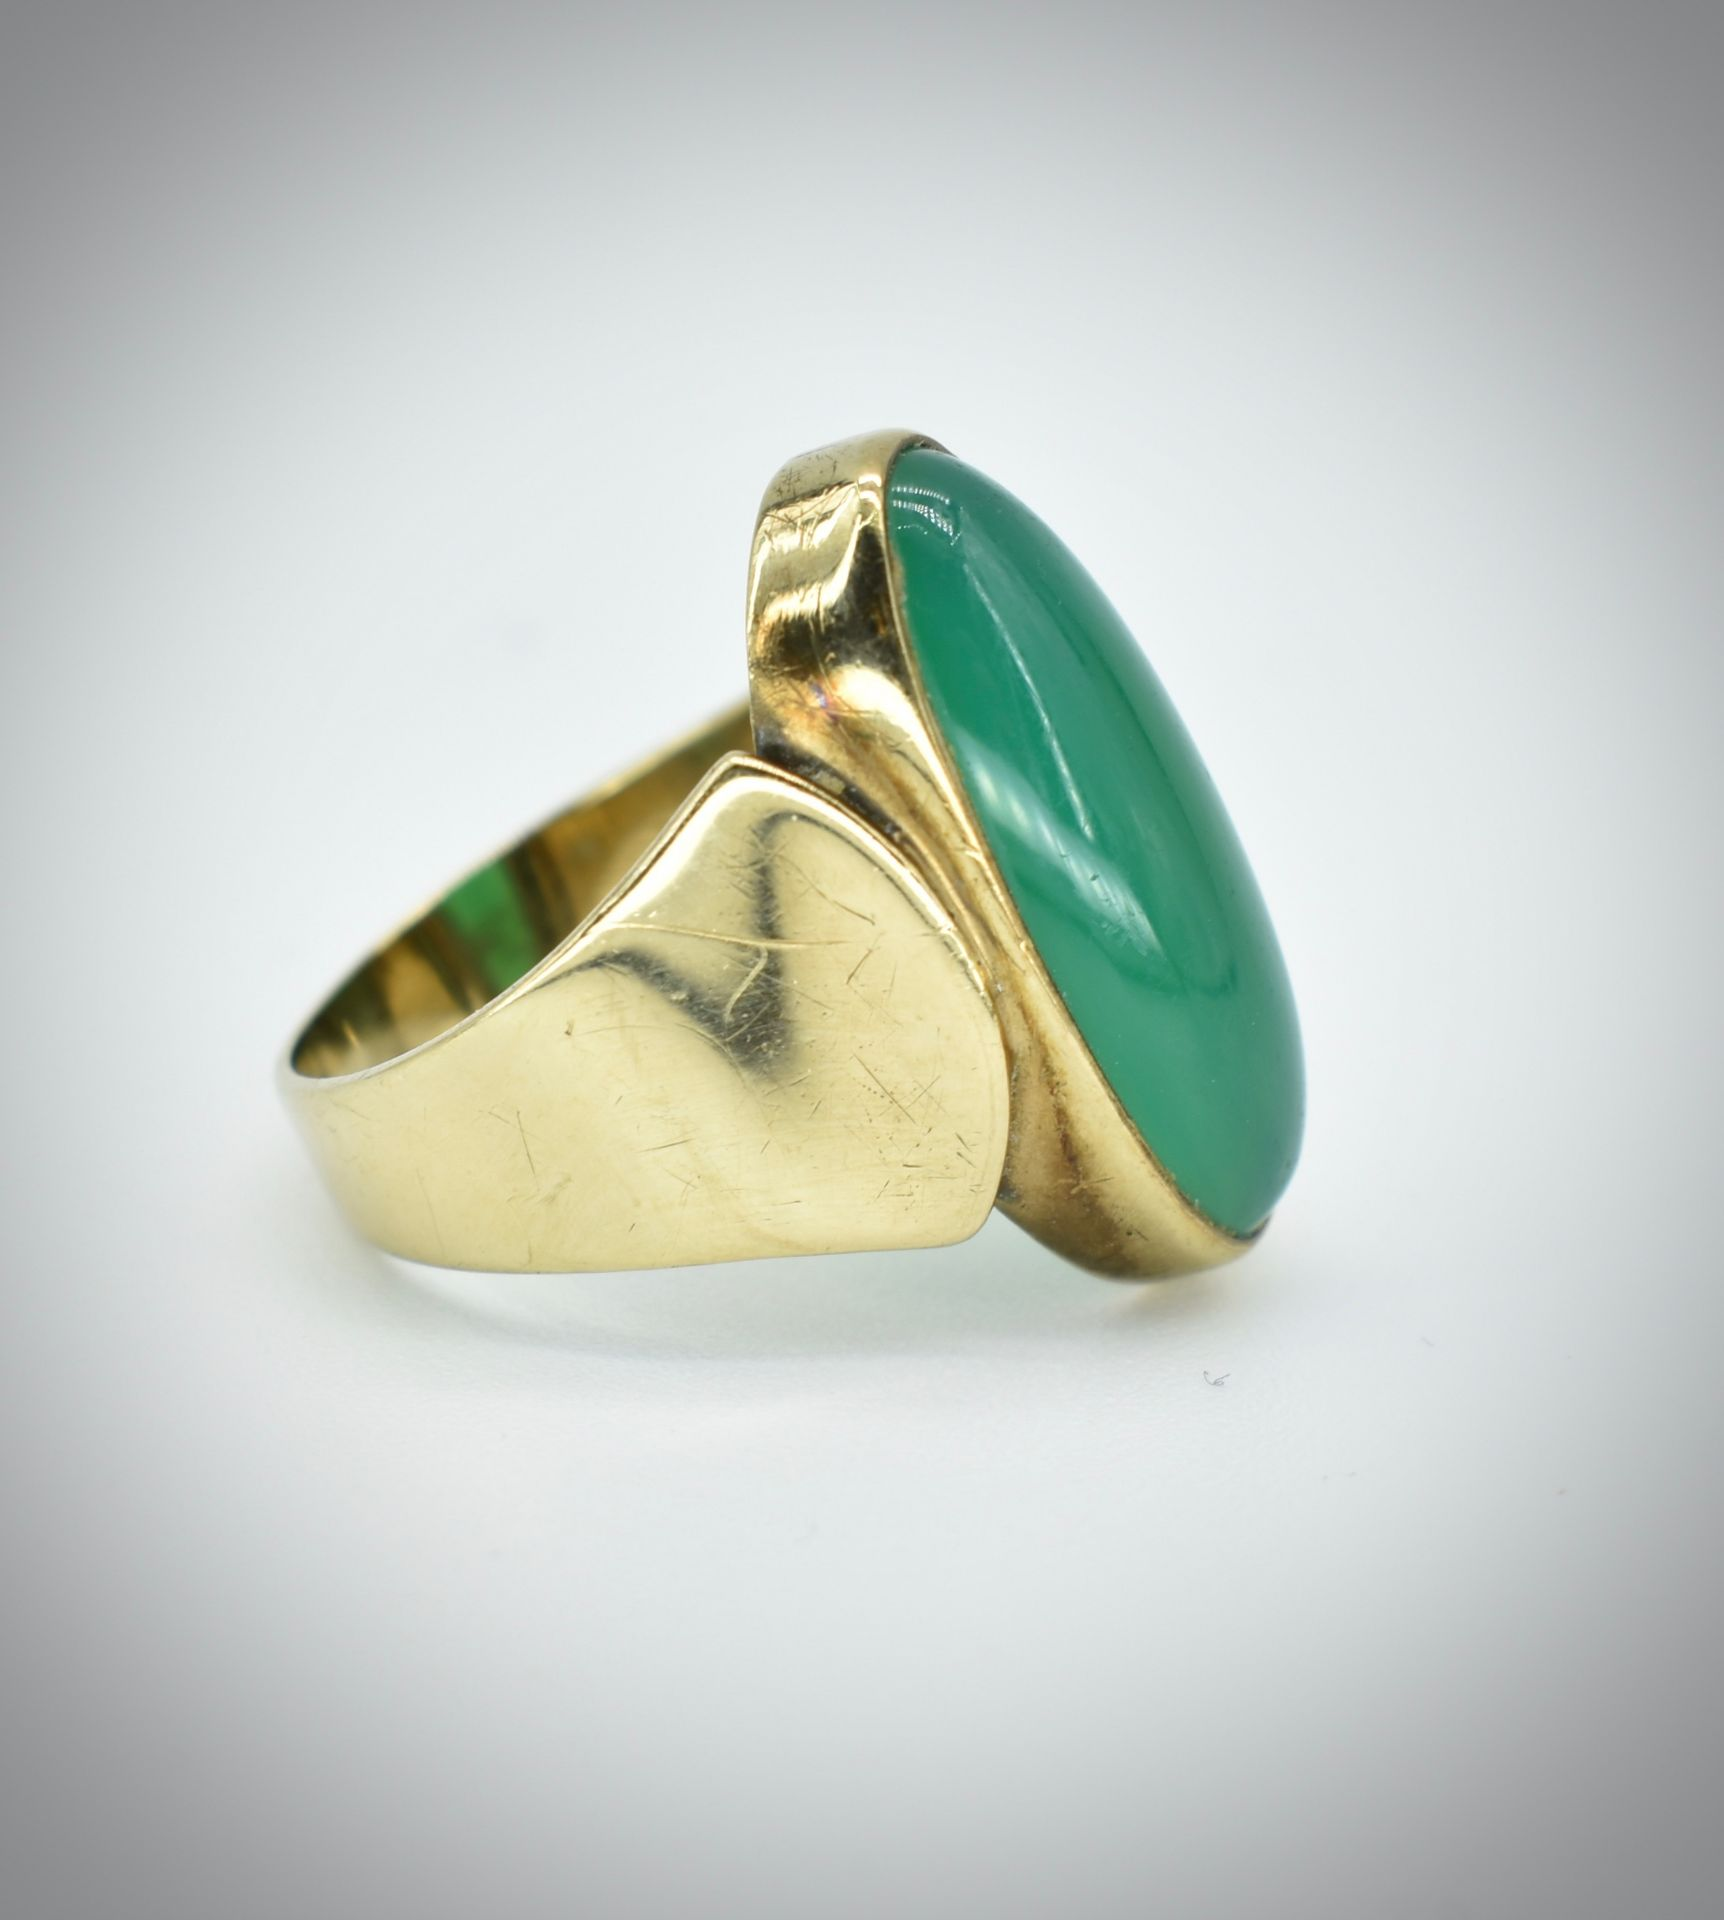 8ct Gold Chrysoprase Cabochon Ring - Image 3 of 3